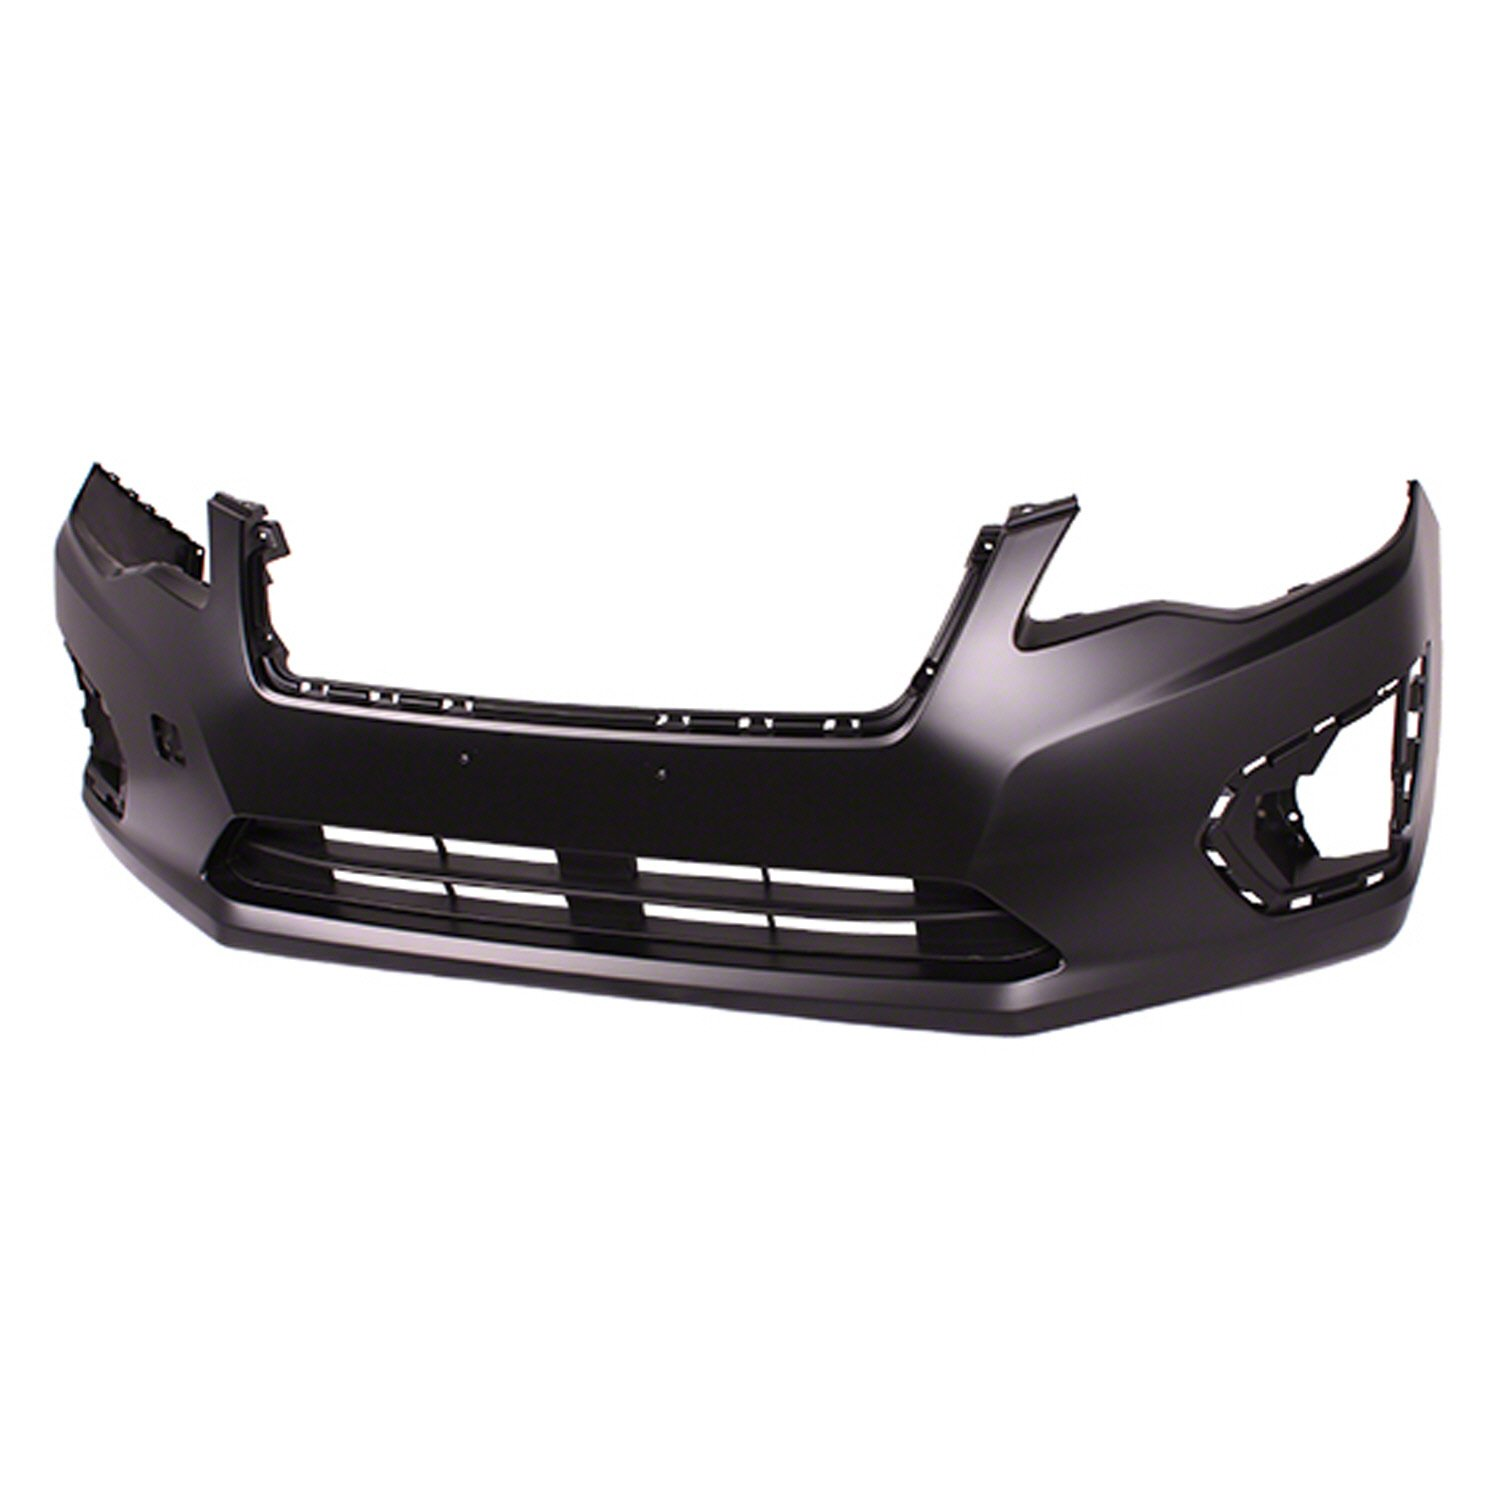 Crash Parts Plus Red Front Bumper Cover for 12-14 Subaru Impreza SU1000168